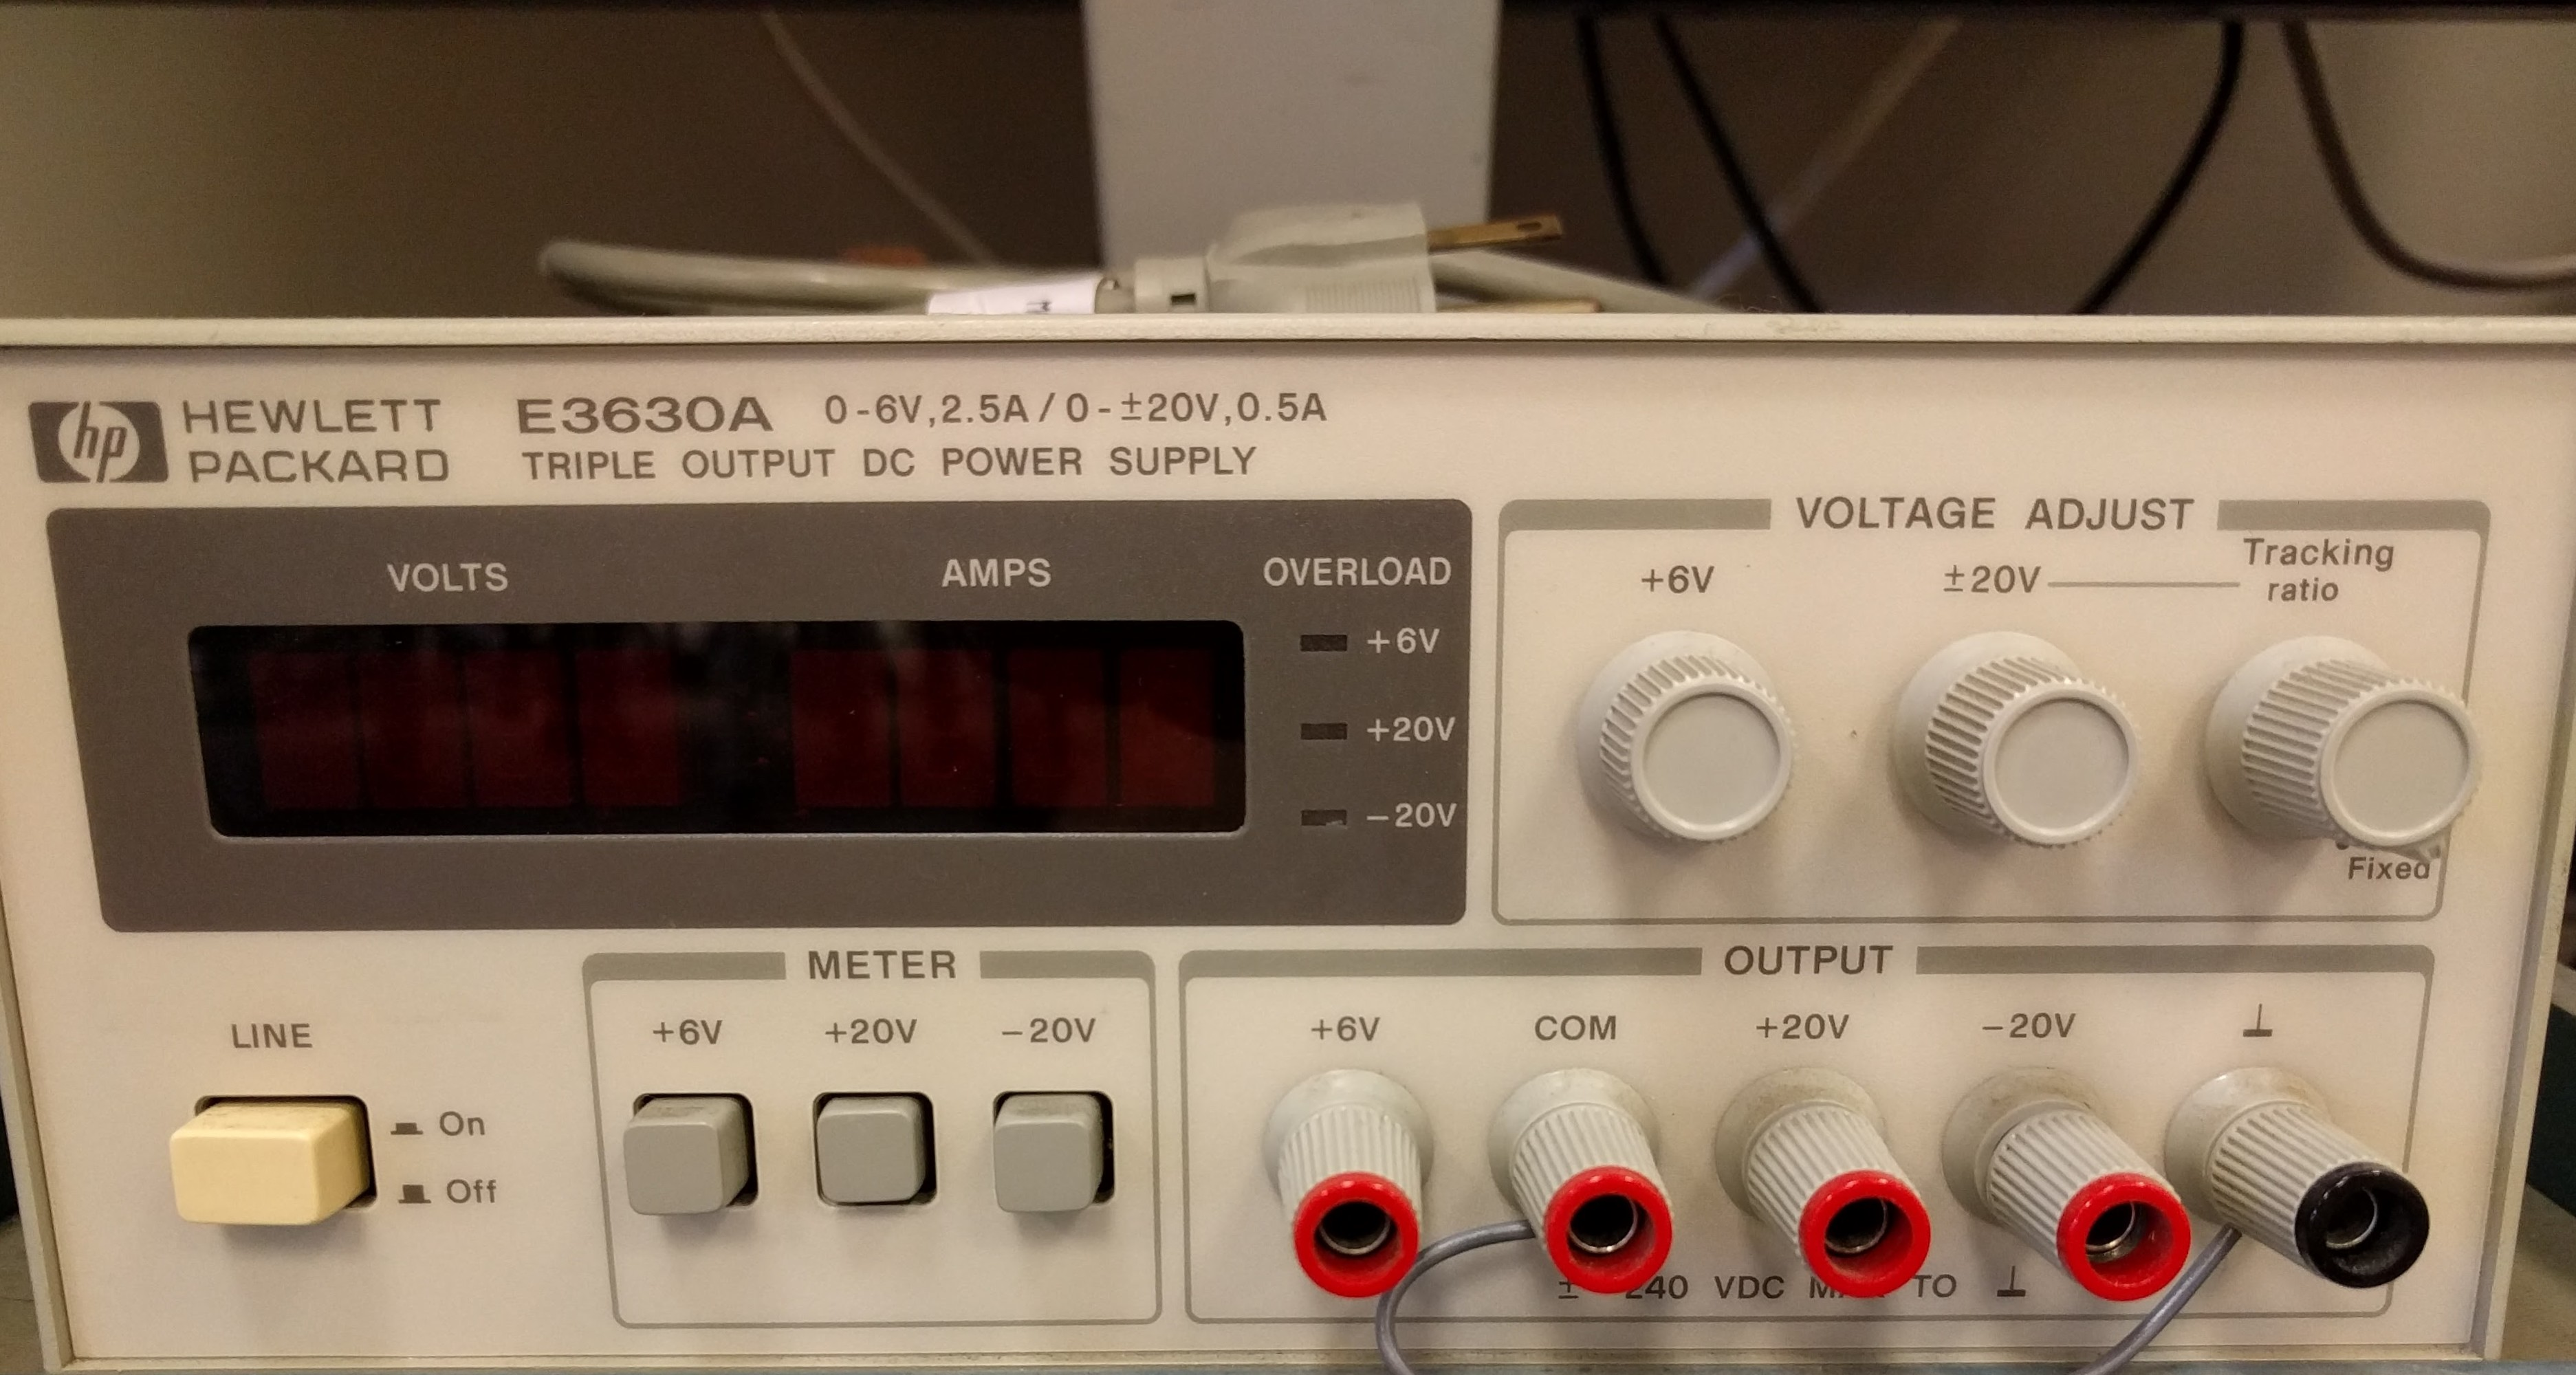 Hewlett Packard DC Power Supply